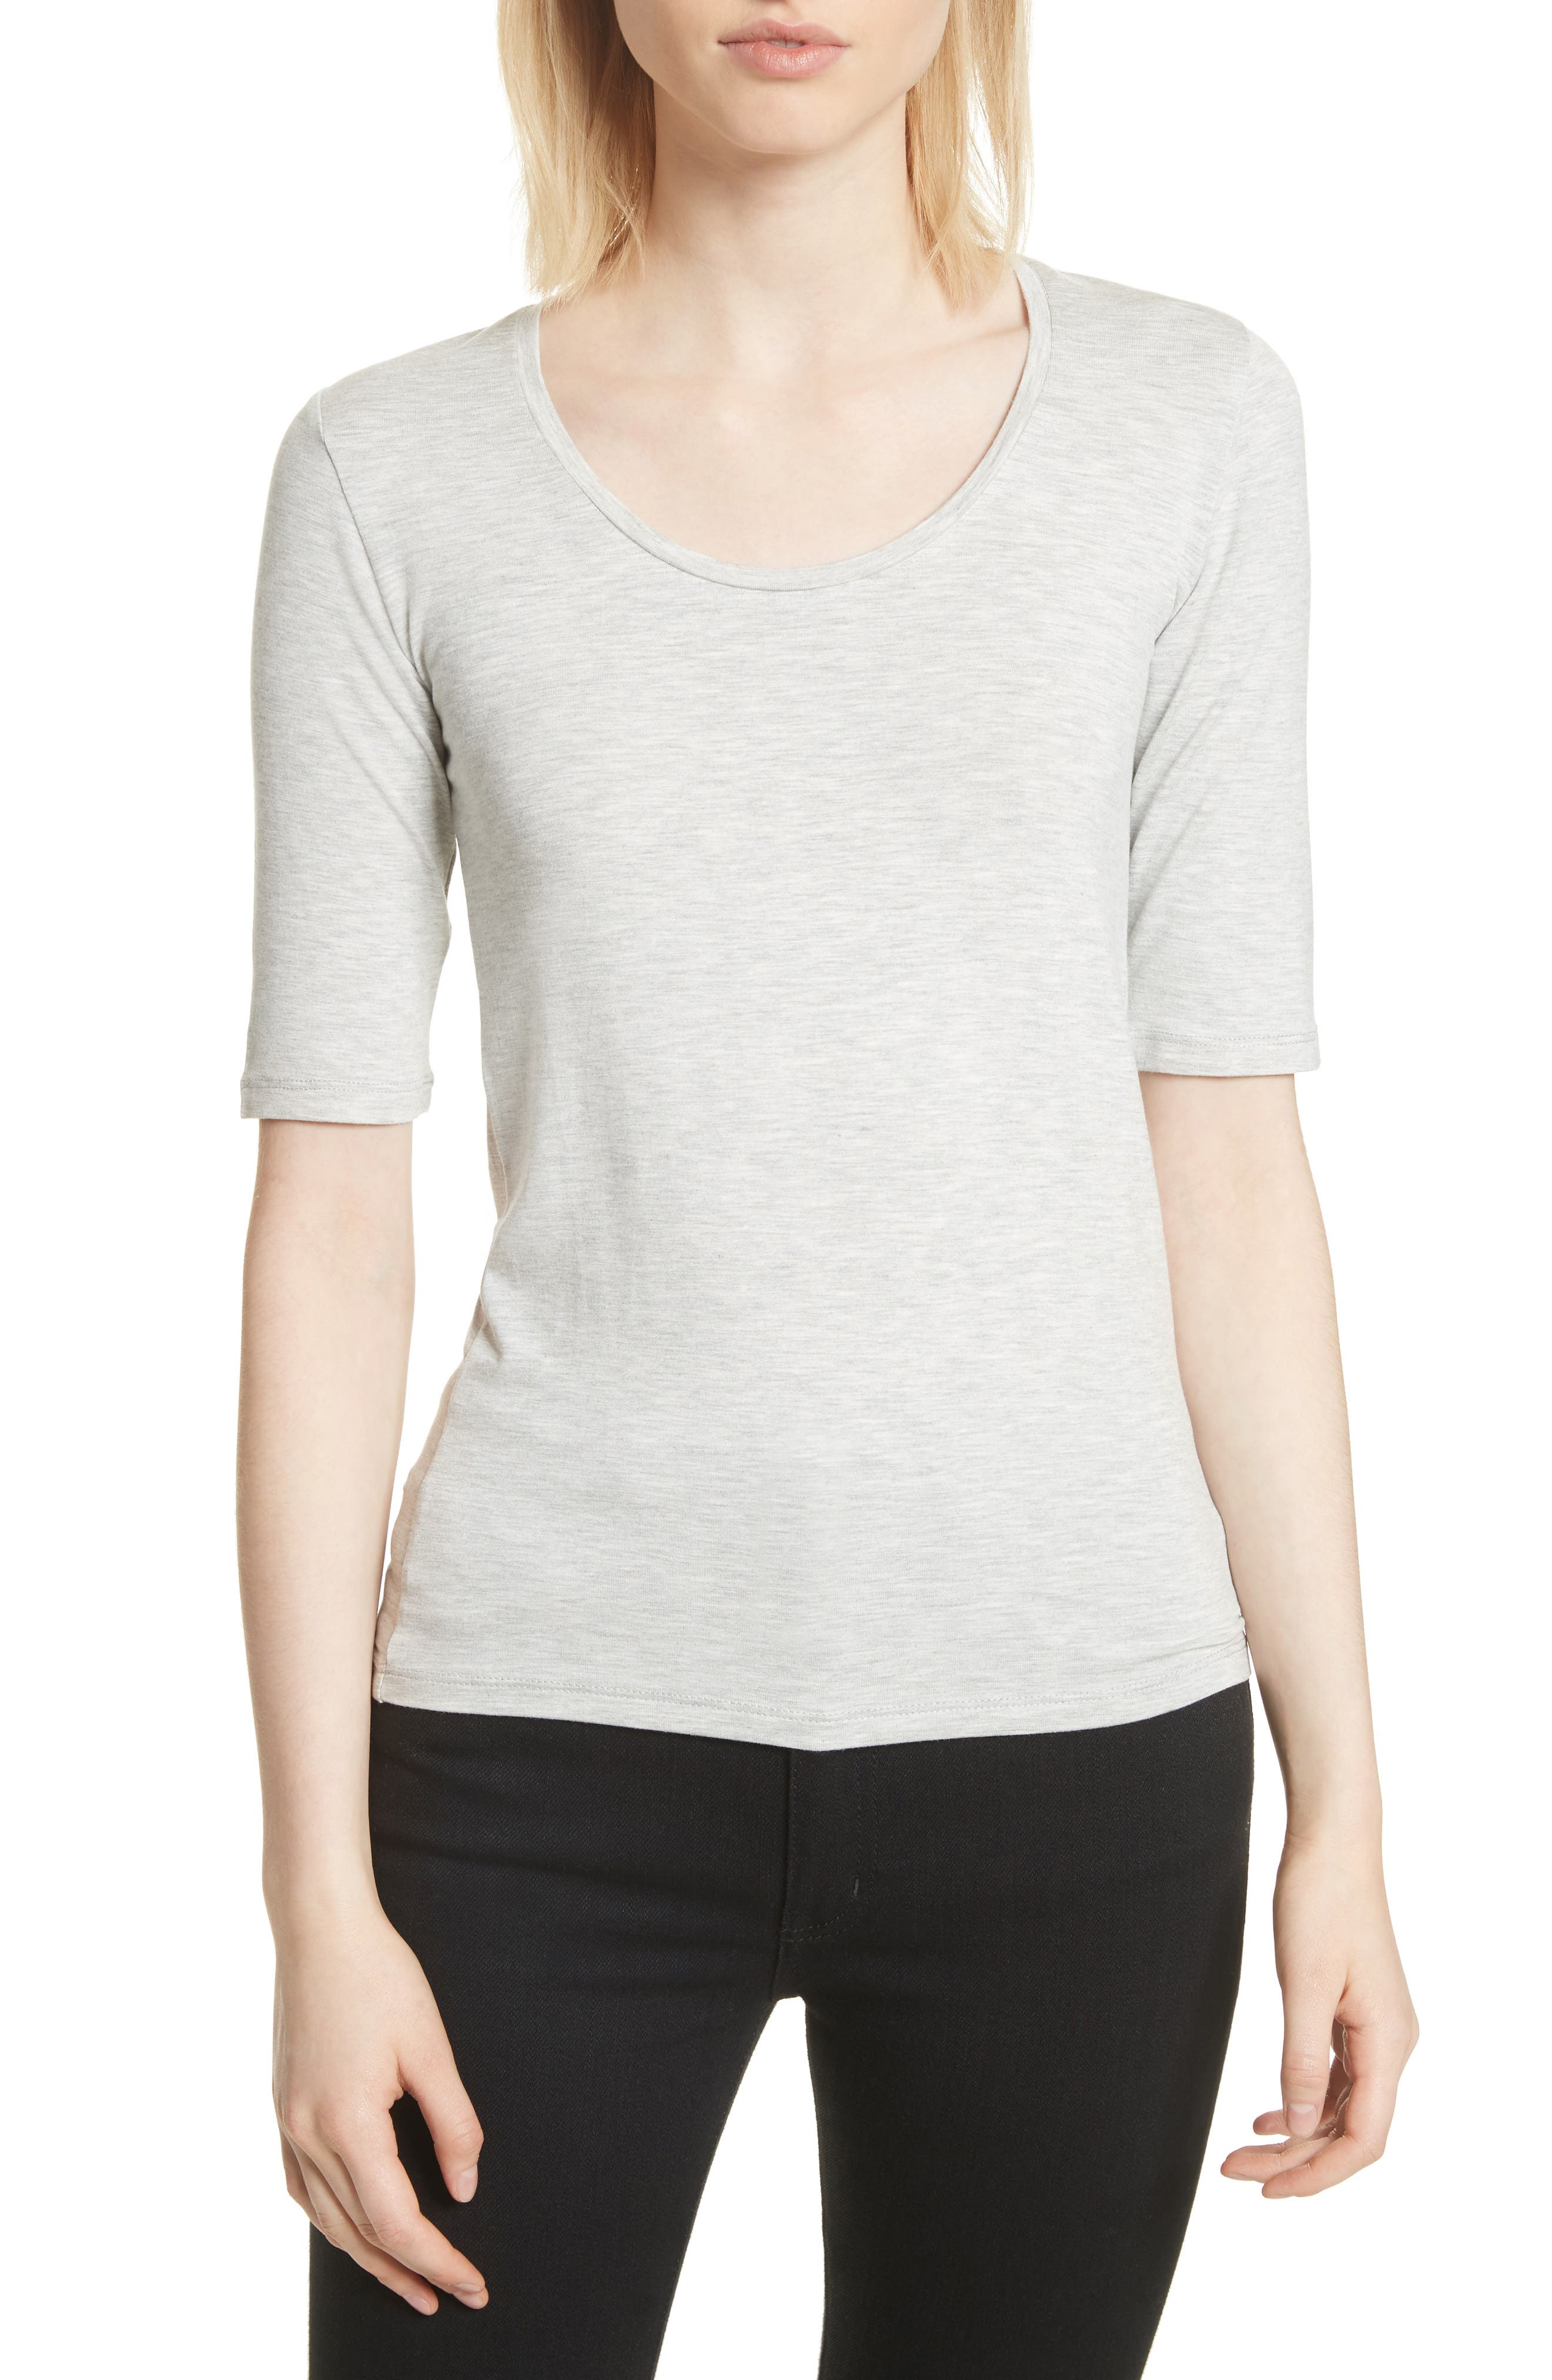 Main Image - Majestic Filatures Soft Touch Elbow Sleeve Tee